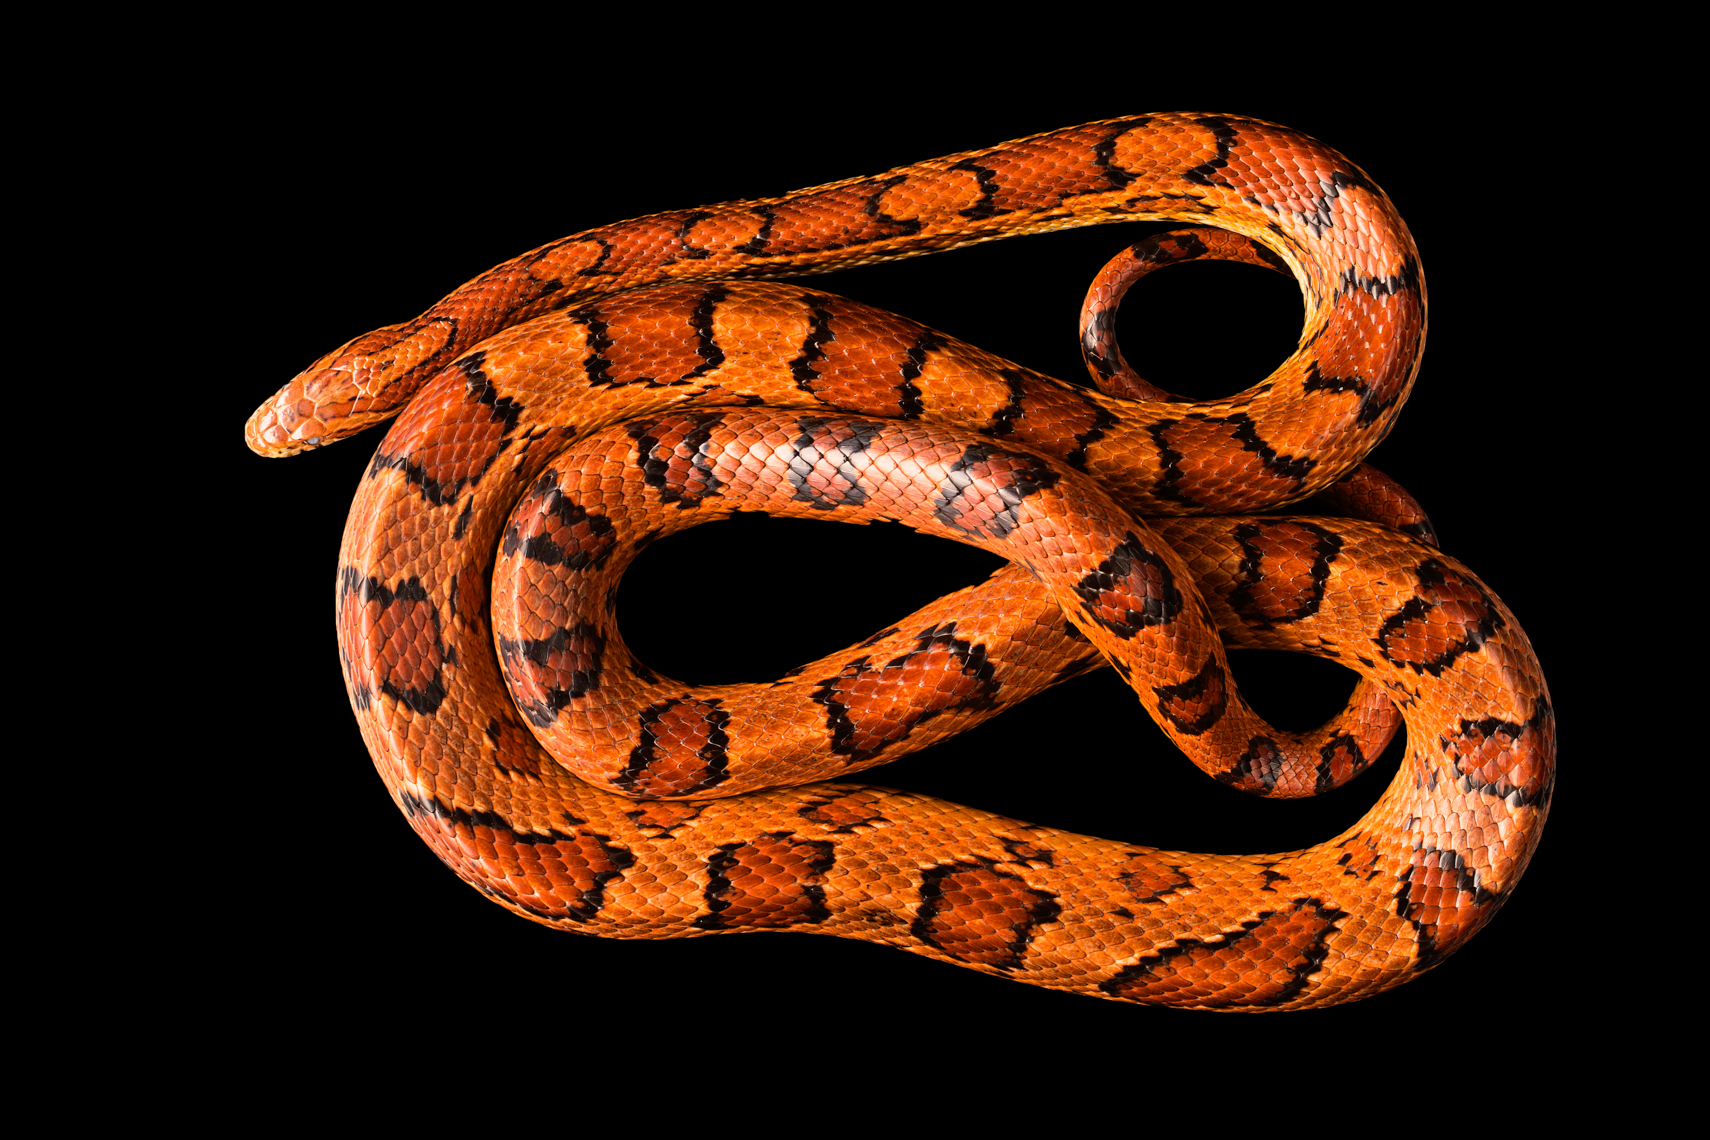 Orange Red Corn Snake